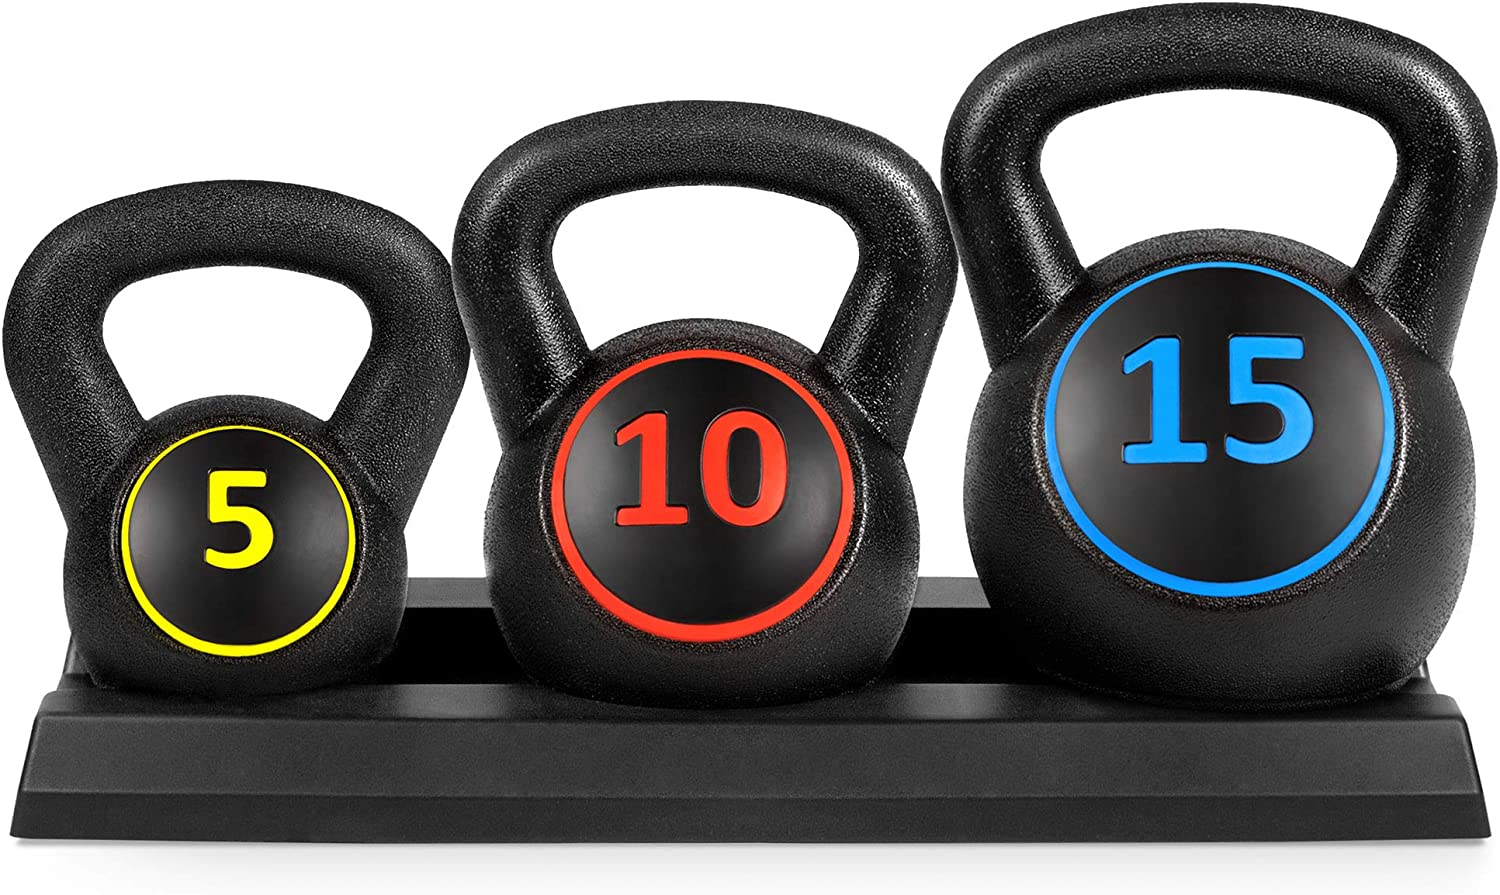 Amazon Prime Day Deals - Best Choice Products 3-Piece HDPE Kettlebell Exercise Fitness Weight Set w/Base Rack, 5lb, 10lb, 15lb Weights